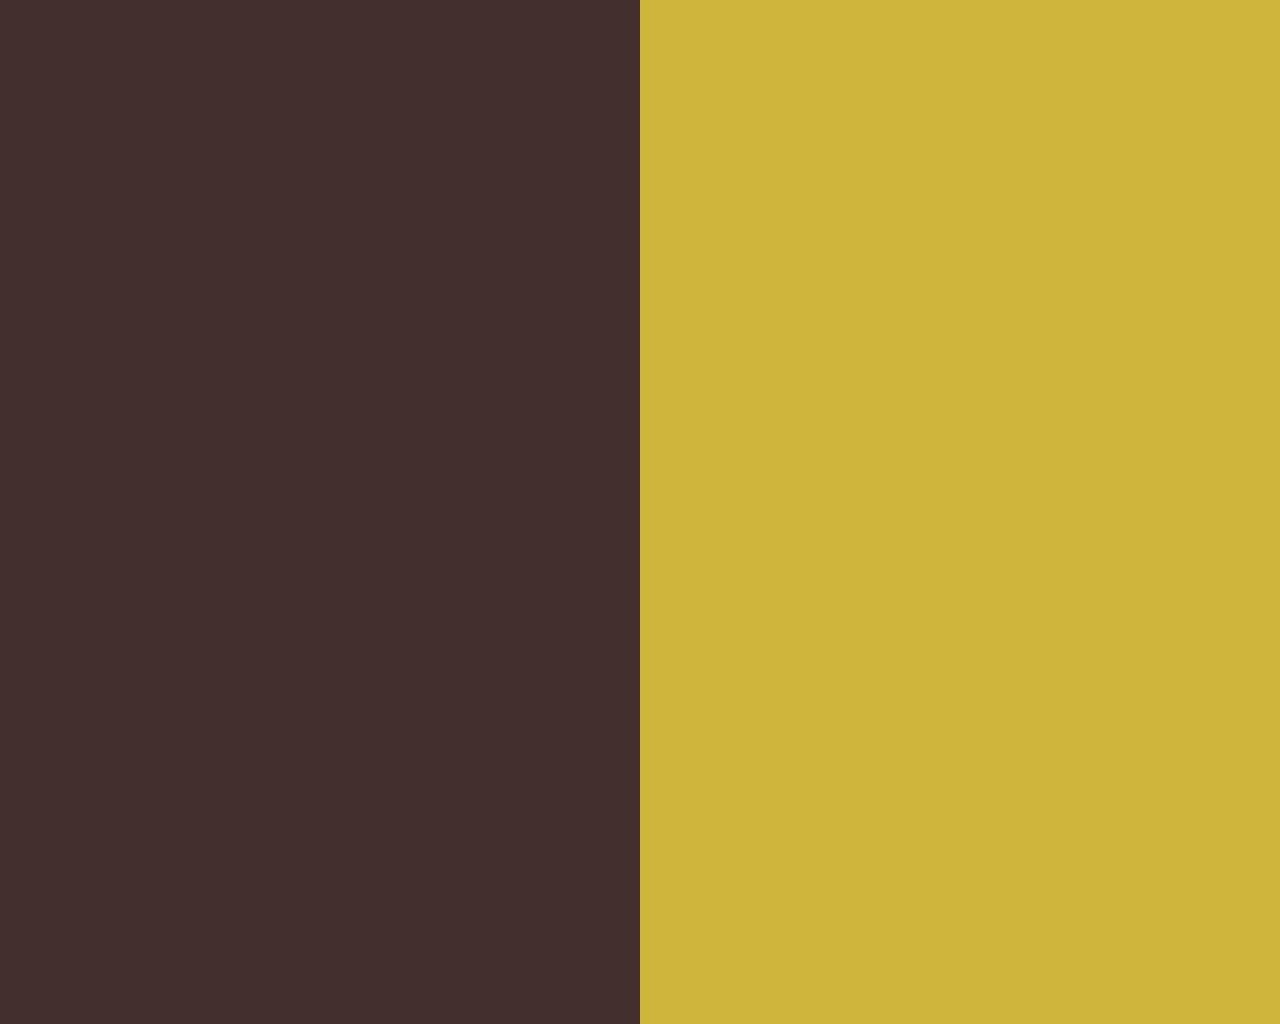 1280x1024 resolution Old Burgundy and Old Gold solid two color 1280x1024